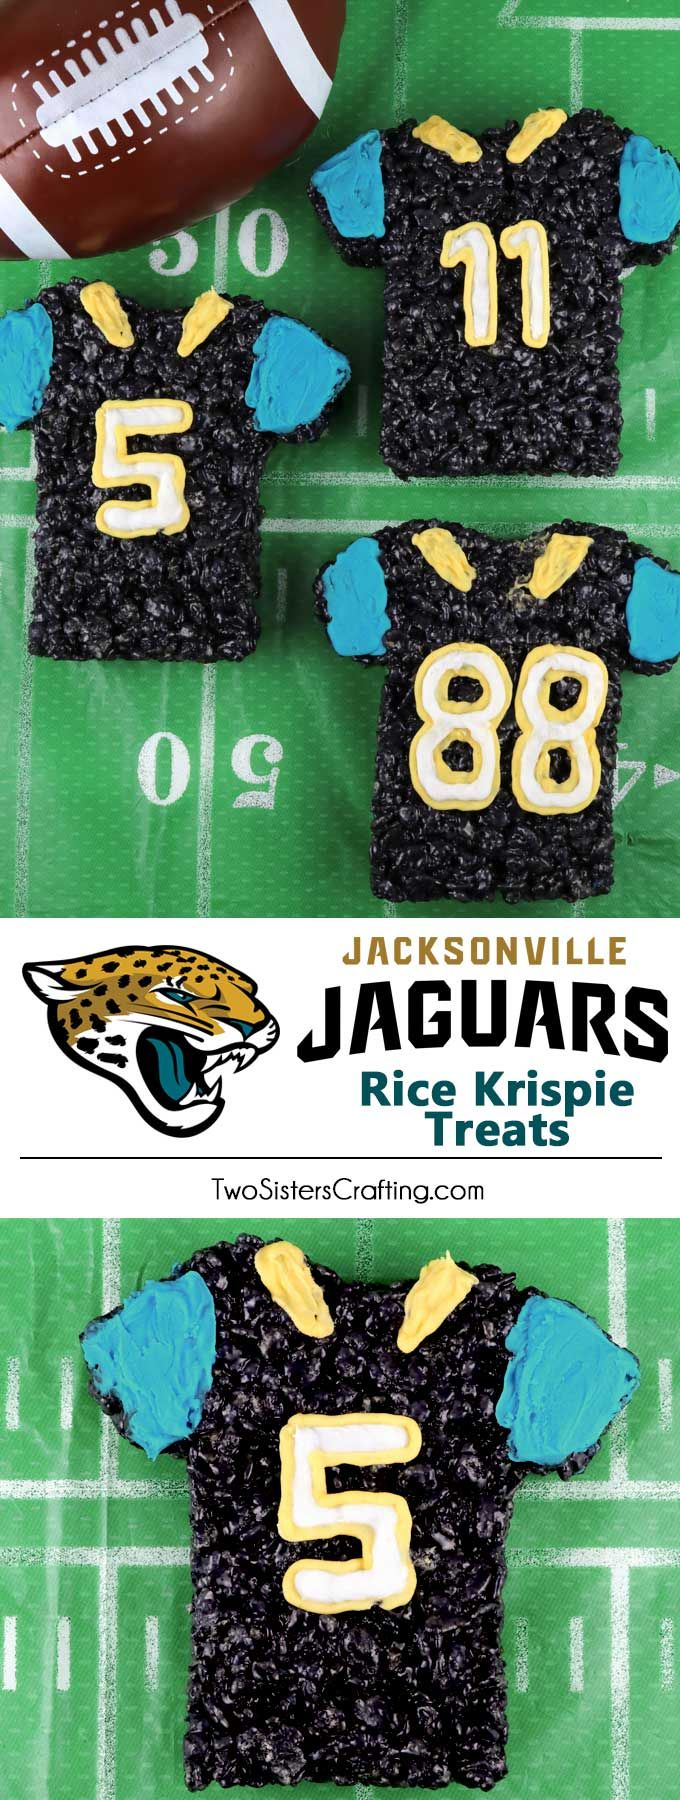 These Jacksonville Jaguars Rice Krispie Treats Team Jerseys are a fun football dessert for a game day football party, an NFL playoff party, a Super Bowl party or as a special snack for the Jacksonville Jaguars fans in your life. Go Jaguars! And follow us for more fun Super Bowl Food Ideas. #jaguars #jacksonvillejaguars #superbowlfood #gamedayfood #superbowl